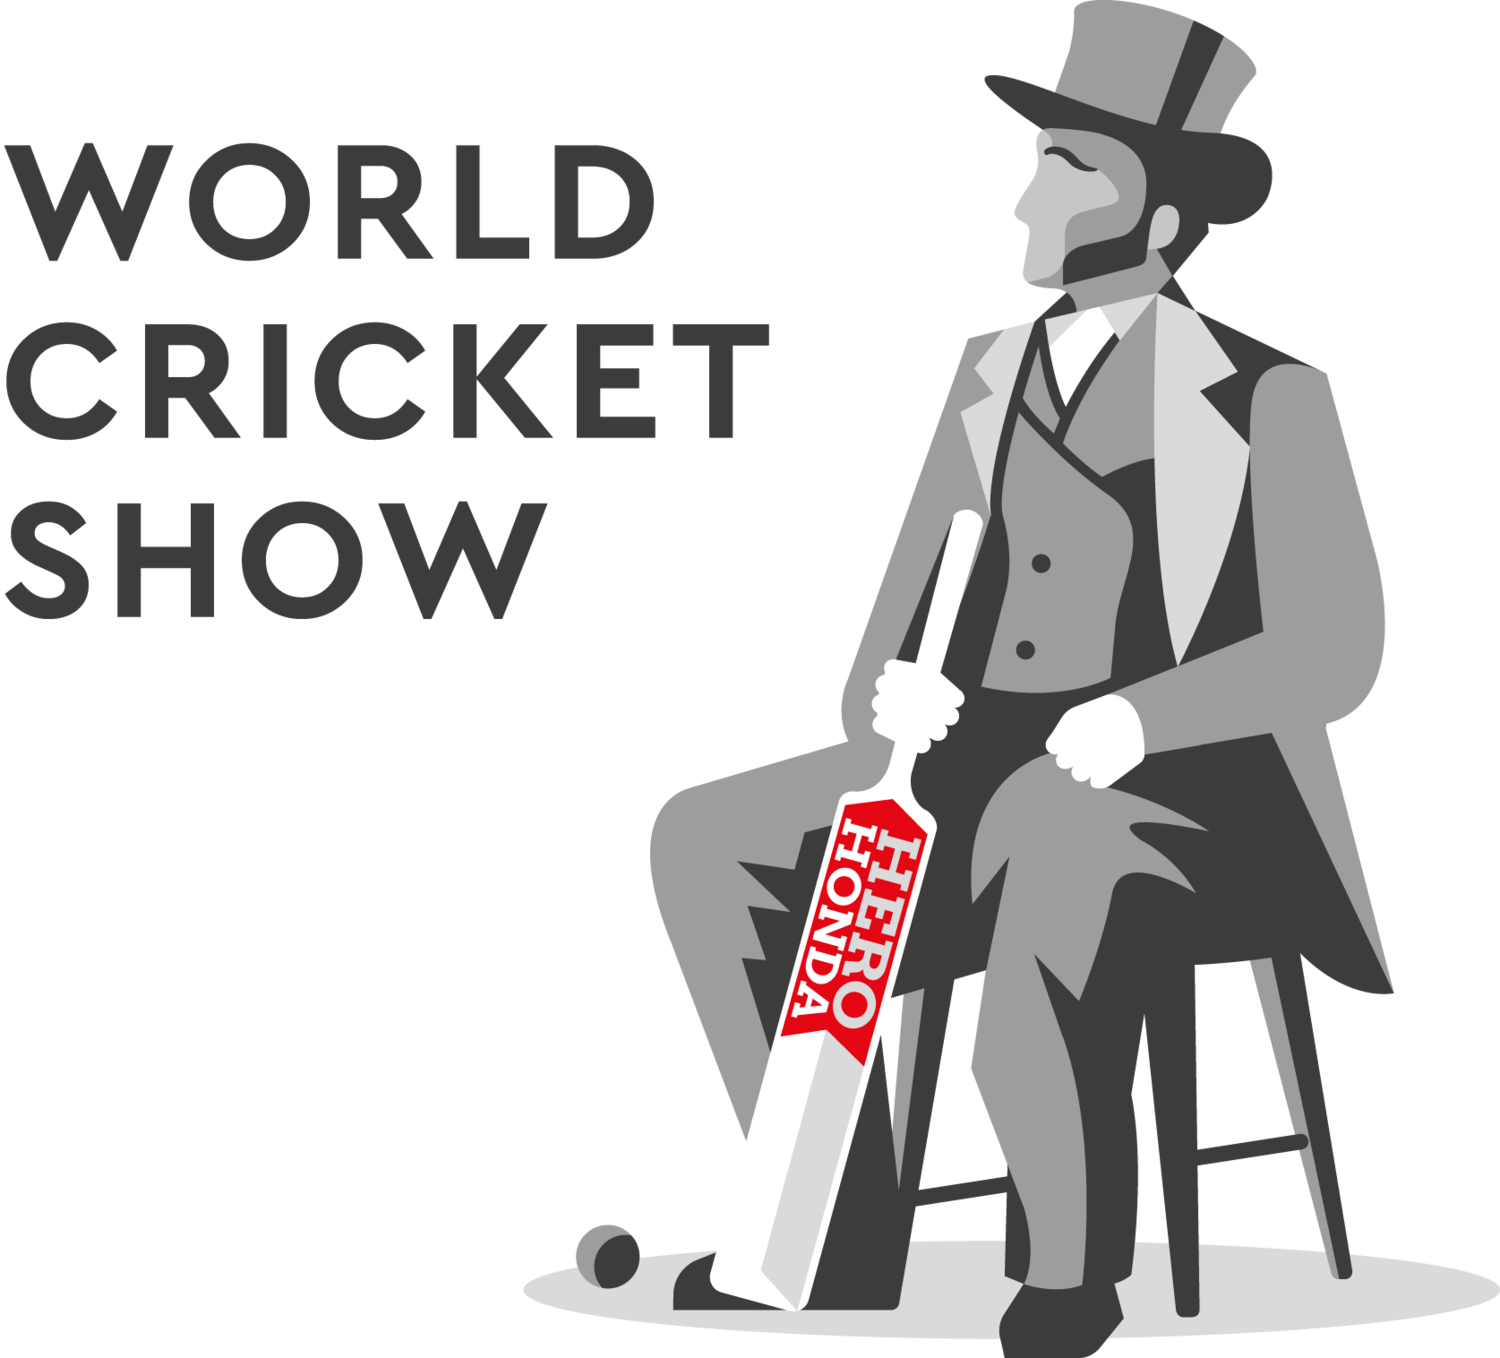 World Cricket Show